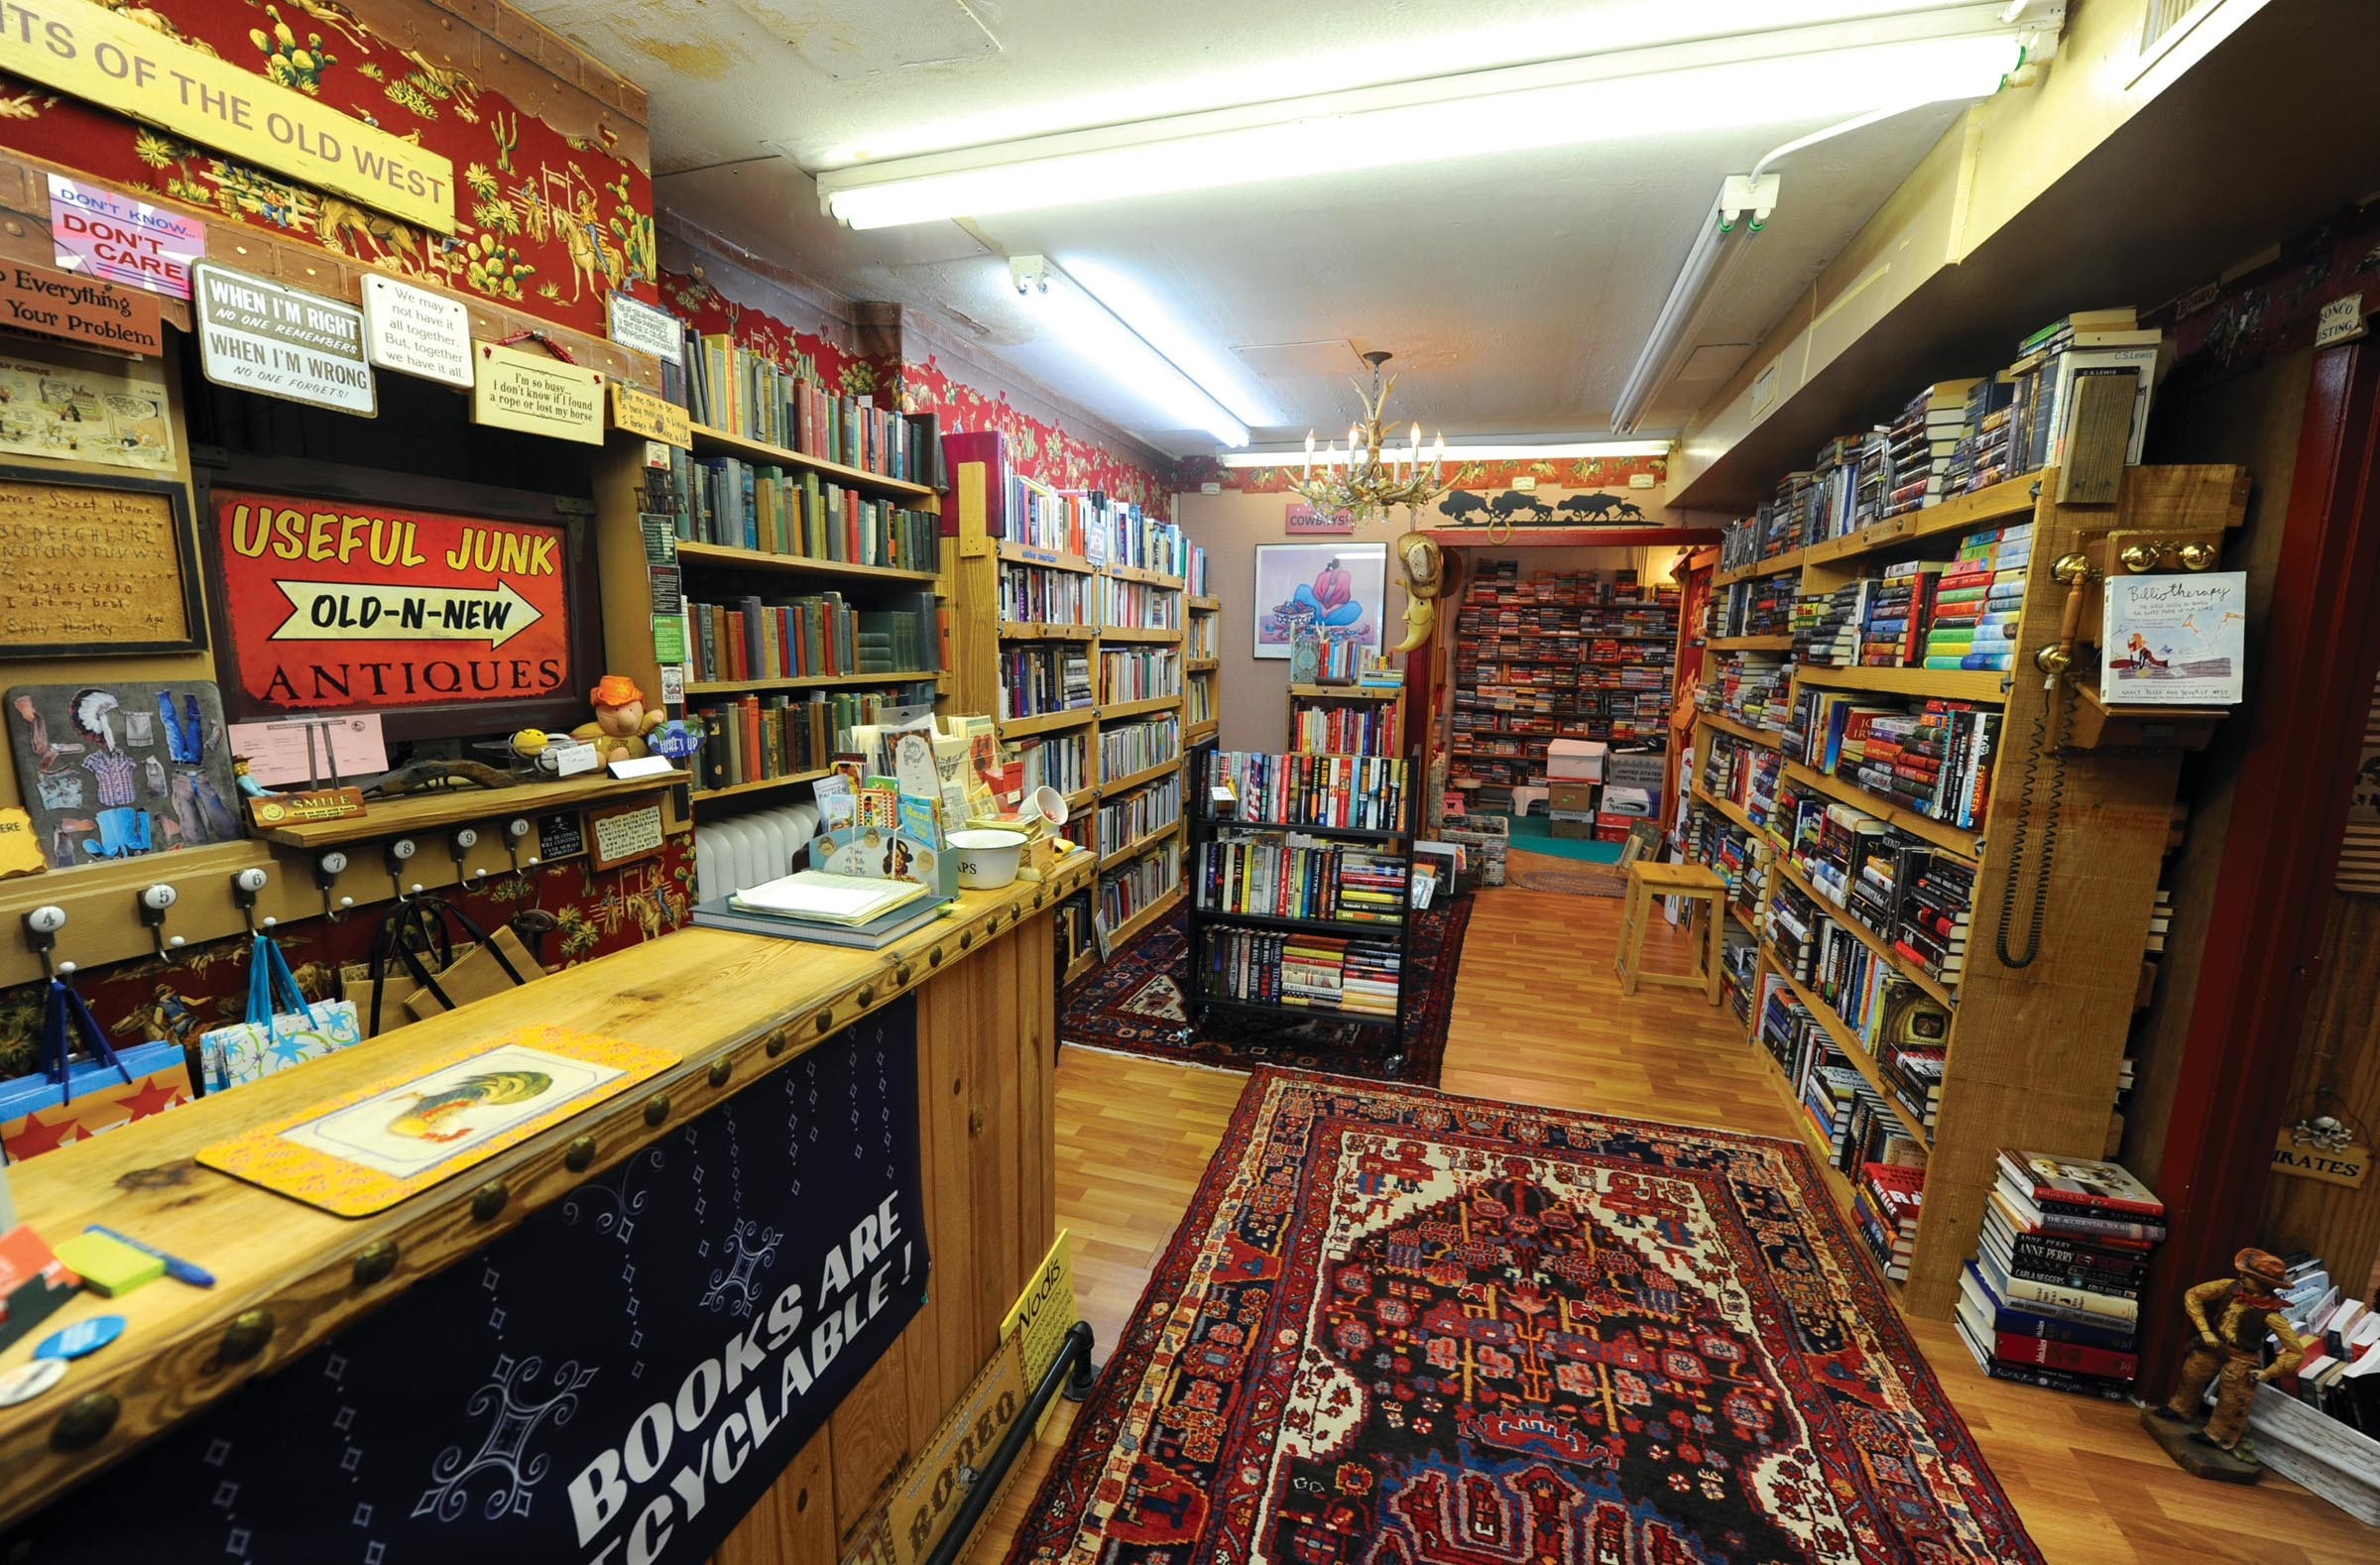 The Old West-themed Tumbleweeds book store off Buford Road in Bon Air. - SCOTT ELMQUIST